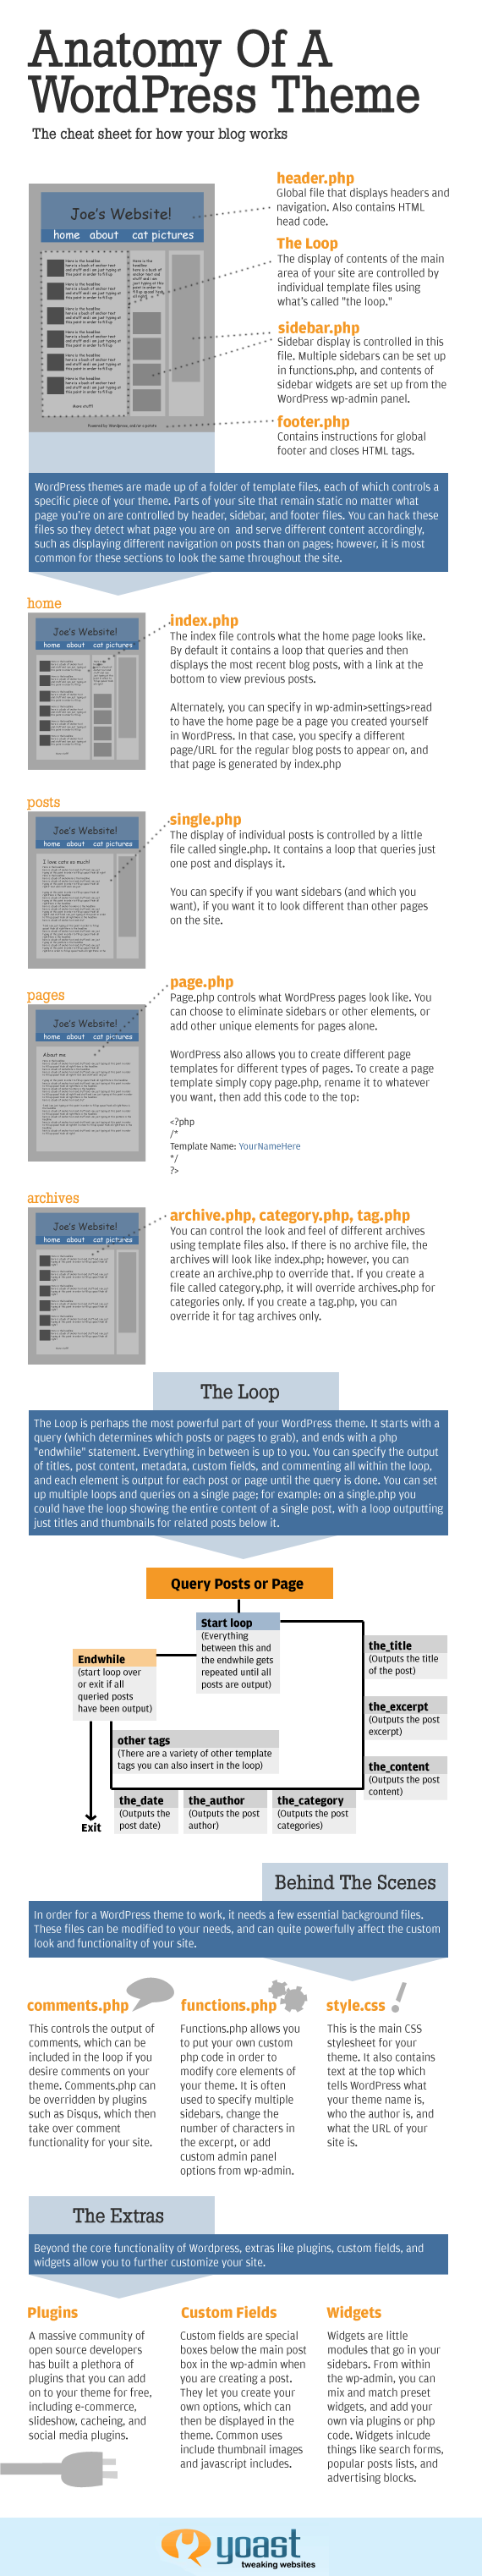 The Anatomy of WordPress